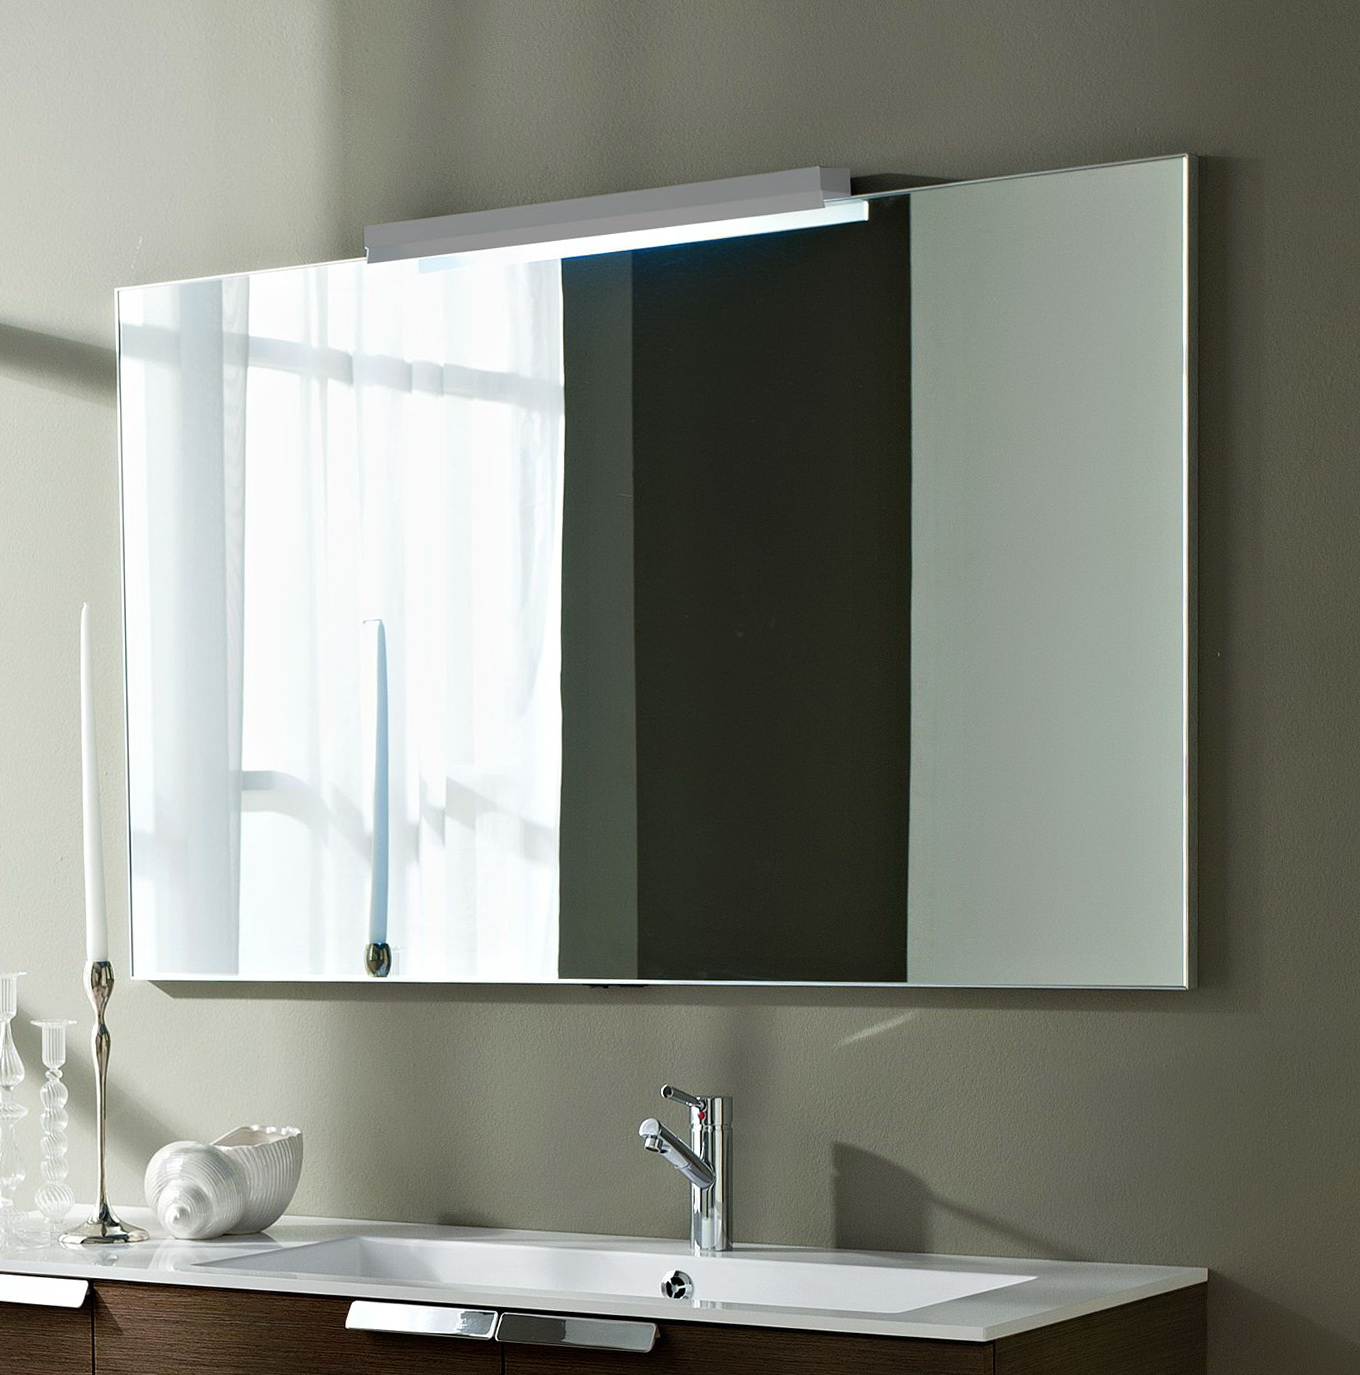 Large Bathroom Mirrors With Lights Home Design Ideas